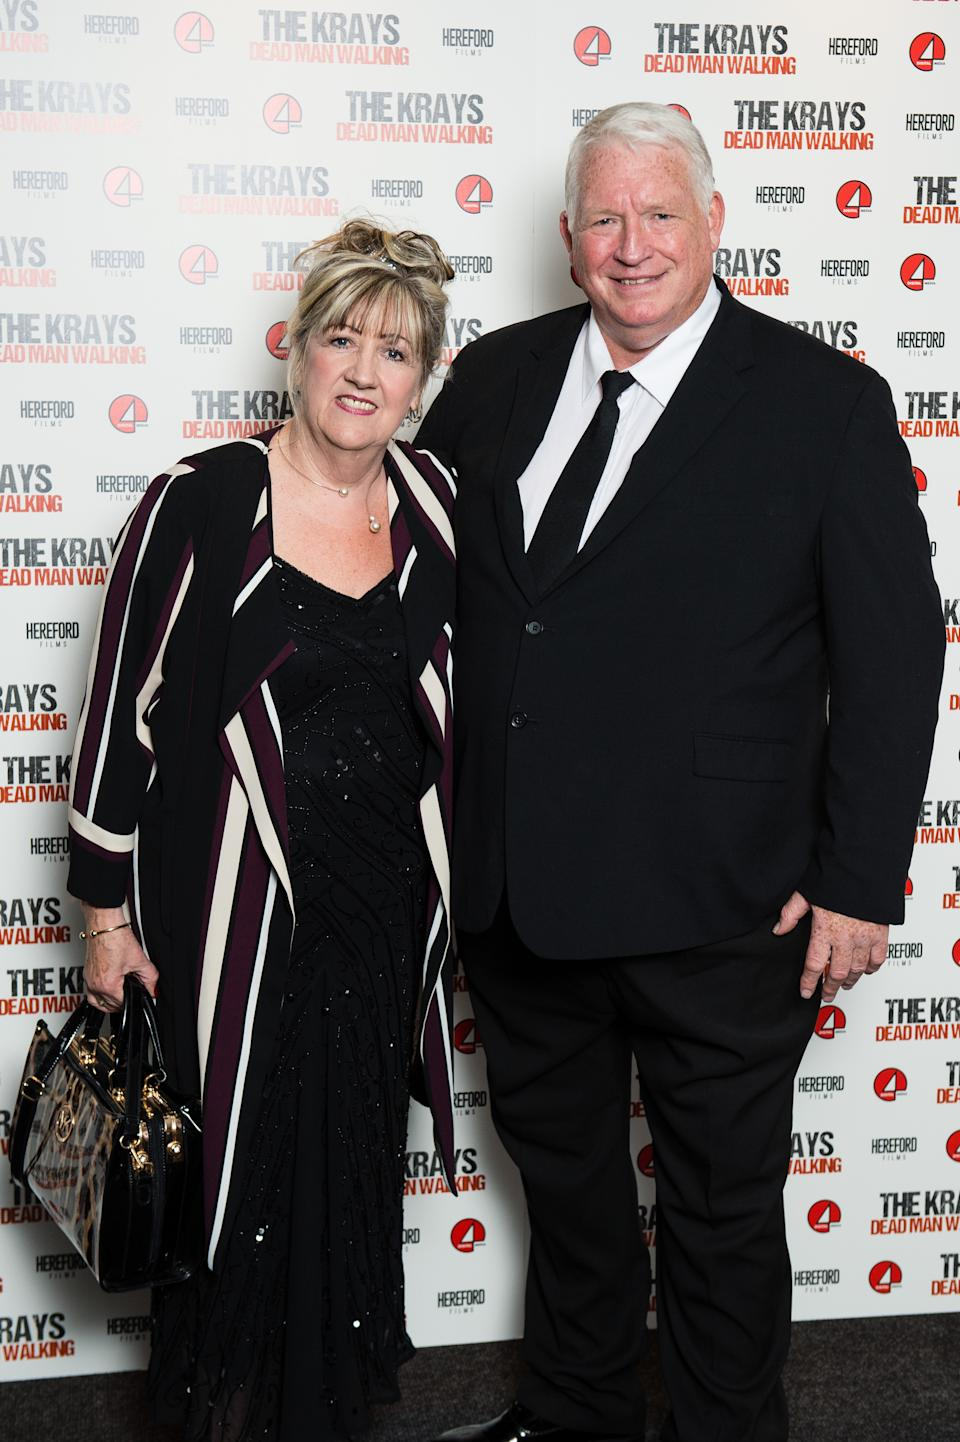 LONDON, ENGLAND - SEPTEMBER 09:  (L-R) Lynne McGarry and Pete McGarry attend 'The Krays: Dead Man Walking' UK premiere at The Genesis Cinema on September 9, 2018 in London, England.  (Photo by Jeff Spicer/Getty Images)